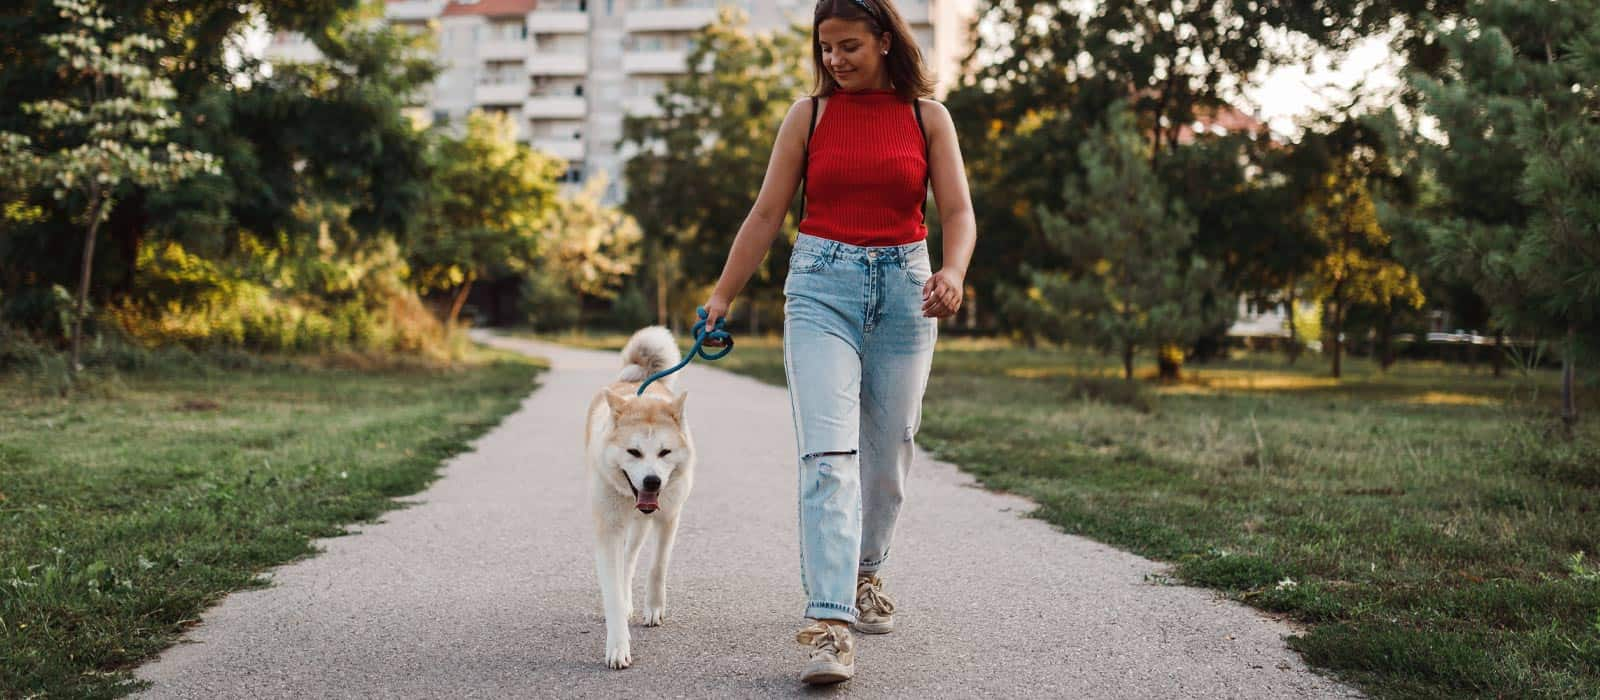 Female in red shirt and jeans walking a white dog on a pavement pathway in a park